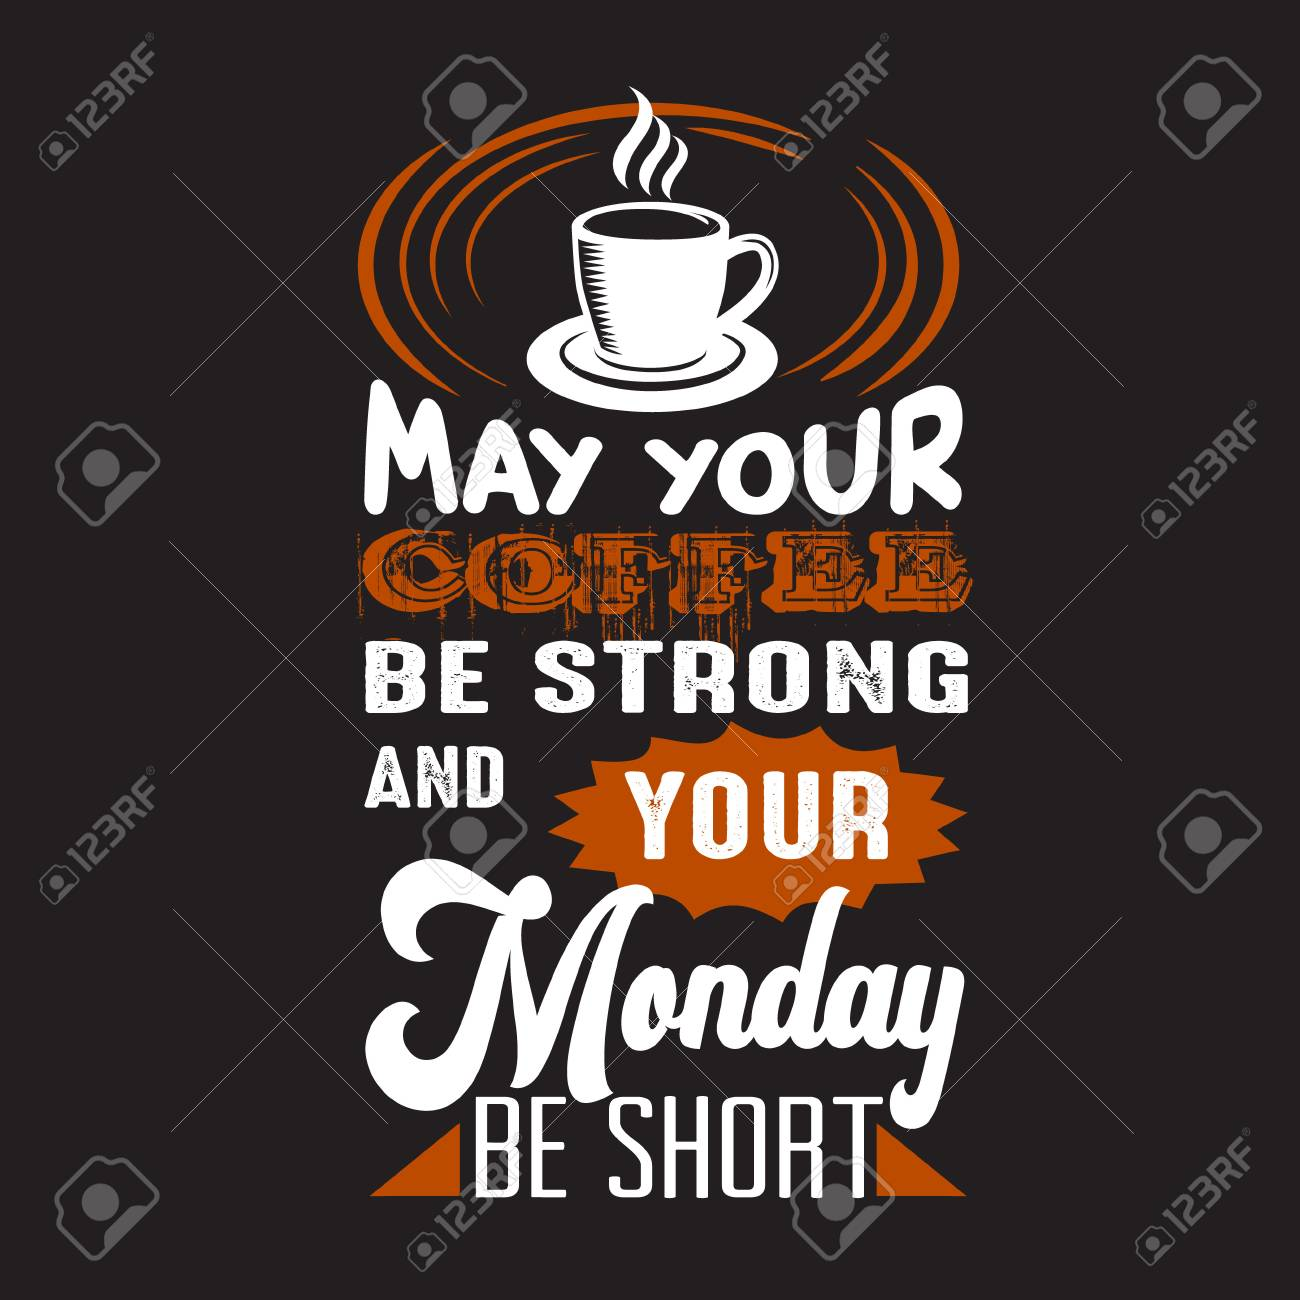 Coffee Quote May Your Coffee Be Strong And Your Monday Be Short Royalty Free Cliparts Vectors And Stock Illustration Image 124794661